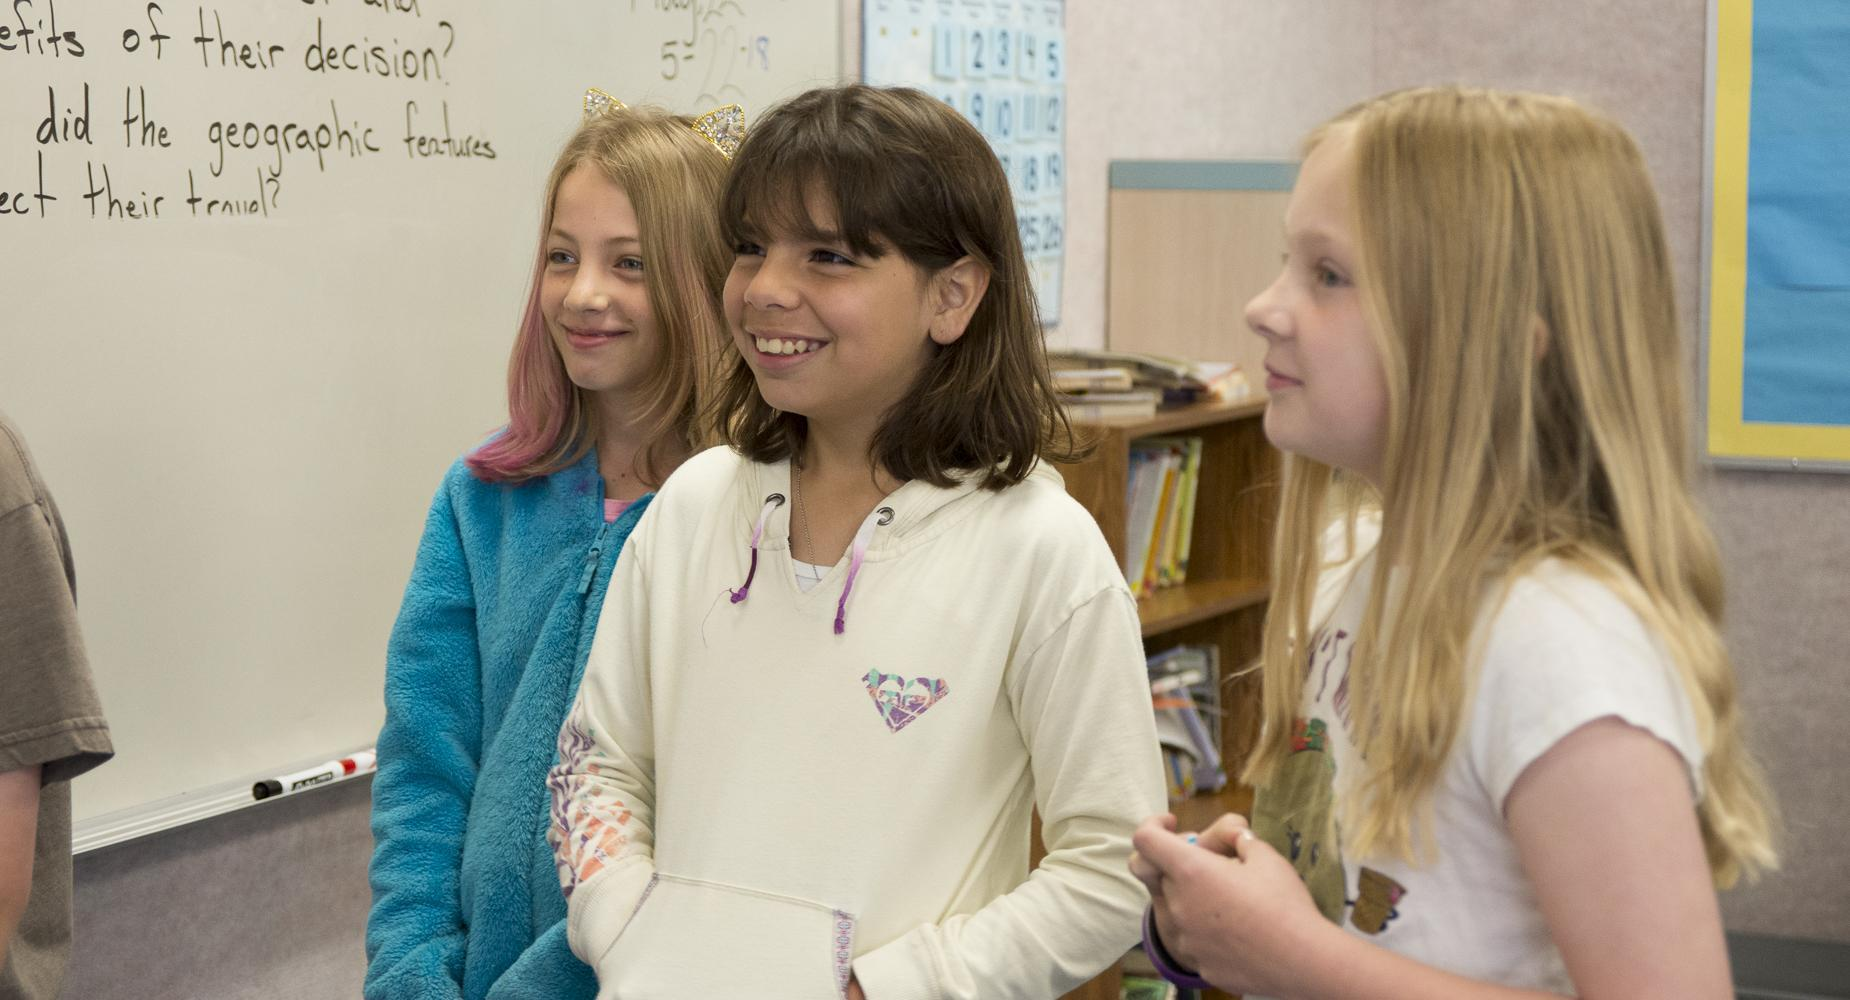 Three girls stand together in the classroom